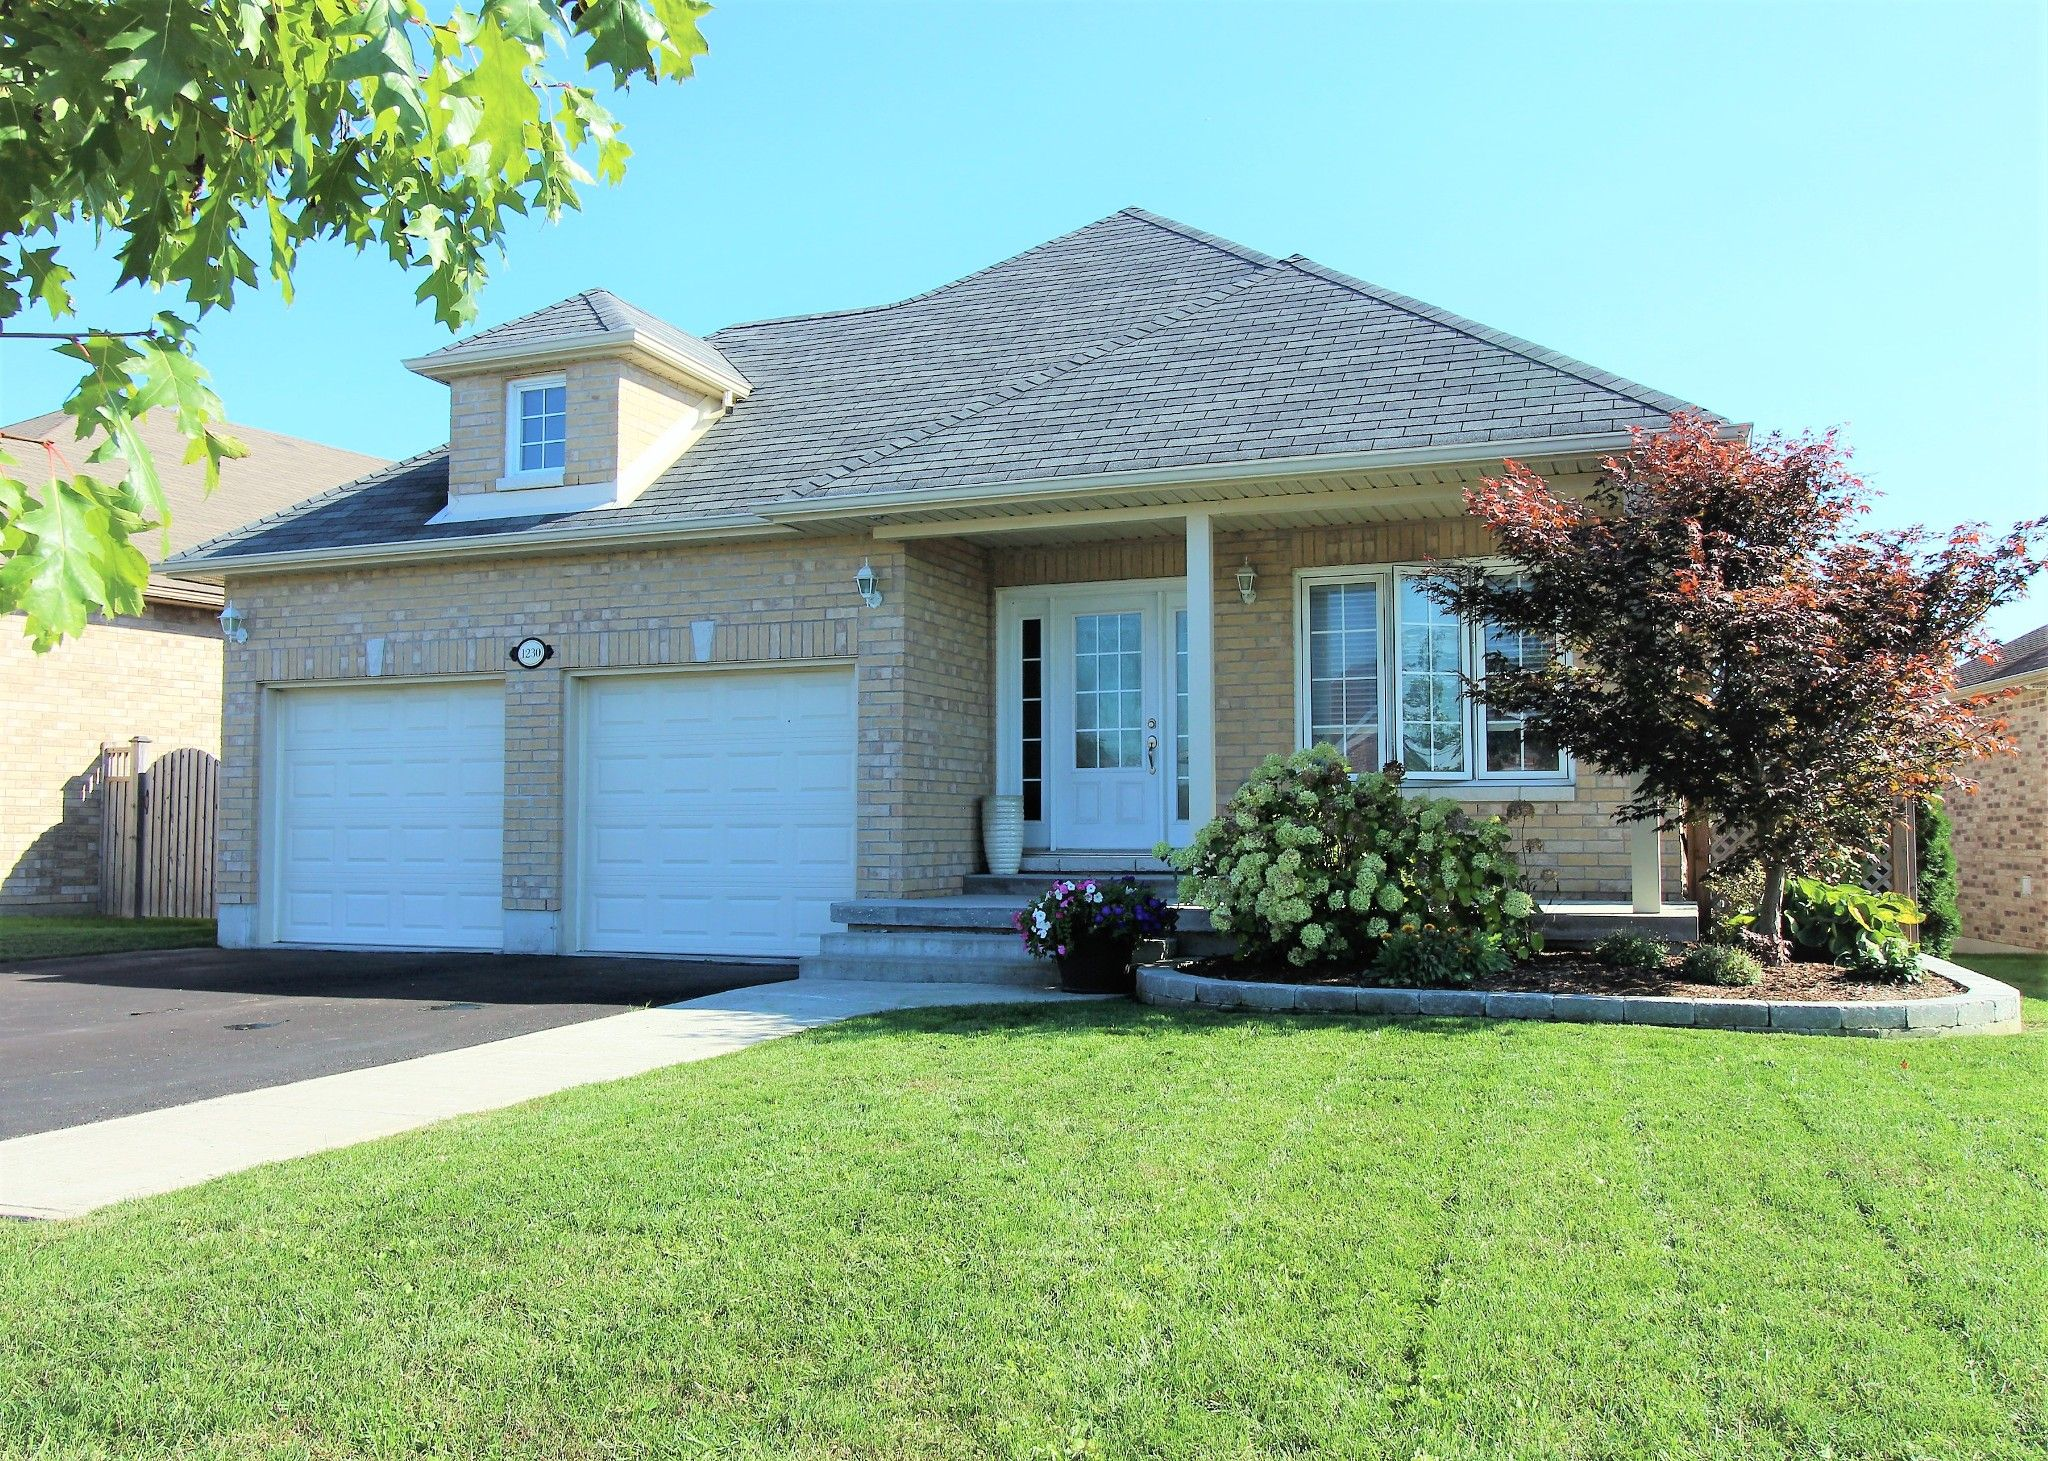 Main Photo: 1230 Ashland Drive in Cobourg: House for sale : MLS®# X5401500